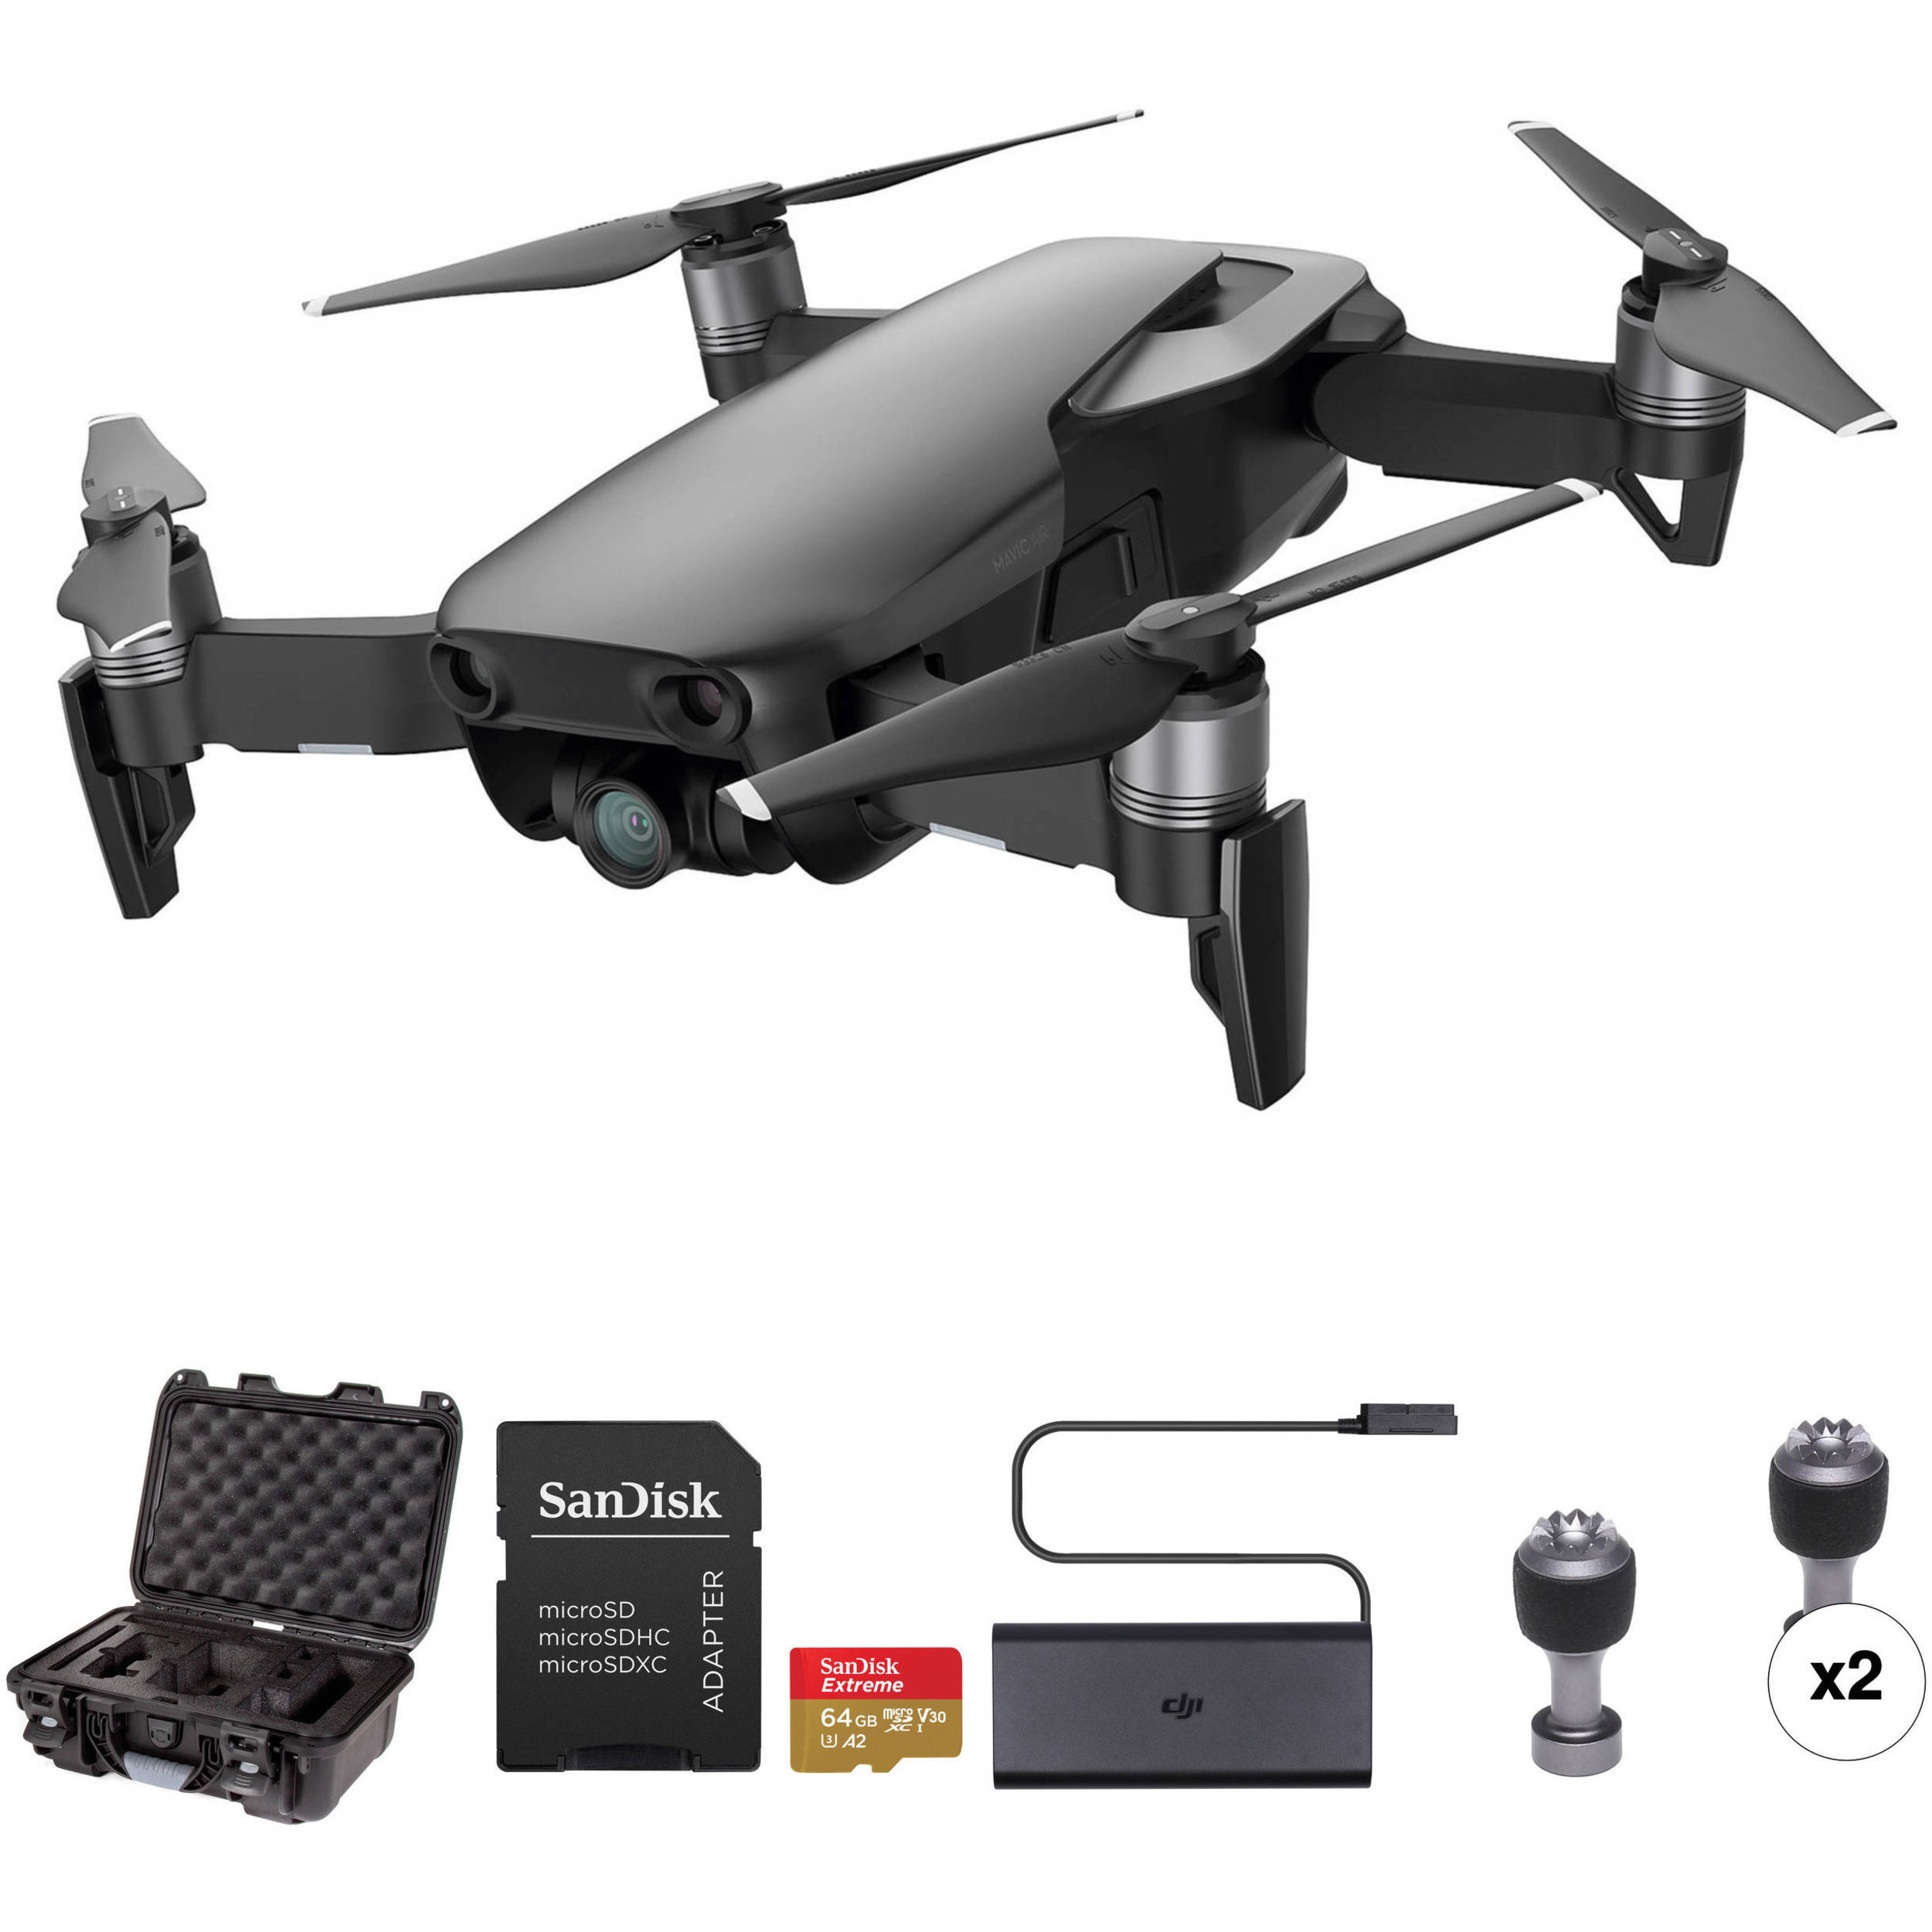 7d3de978821 DJI Mavic Air Drone with Hard Case and 64GB Card Kit (Onyx Black)